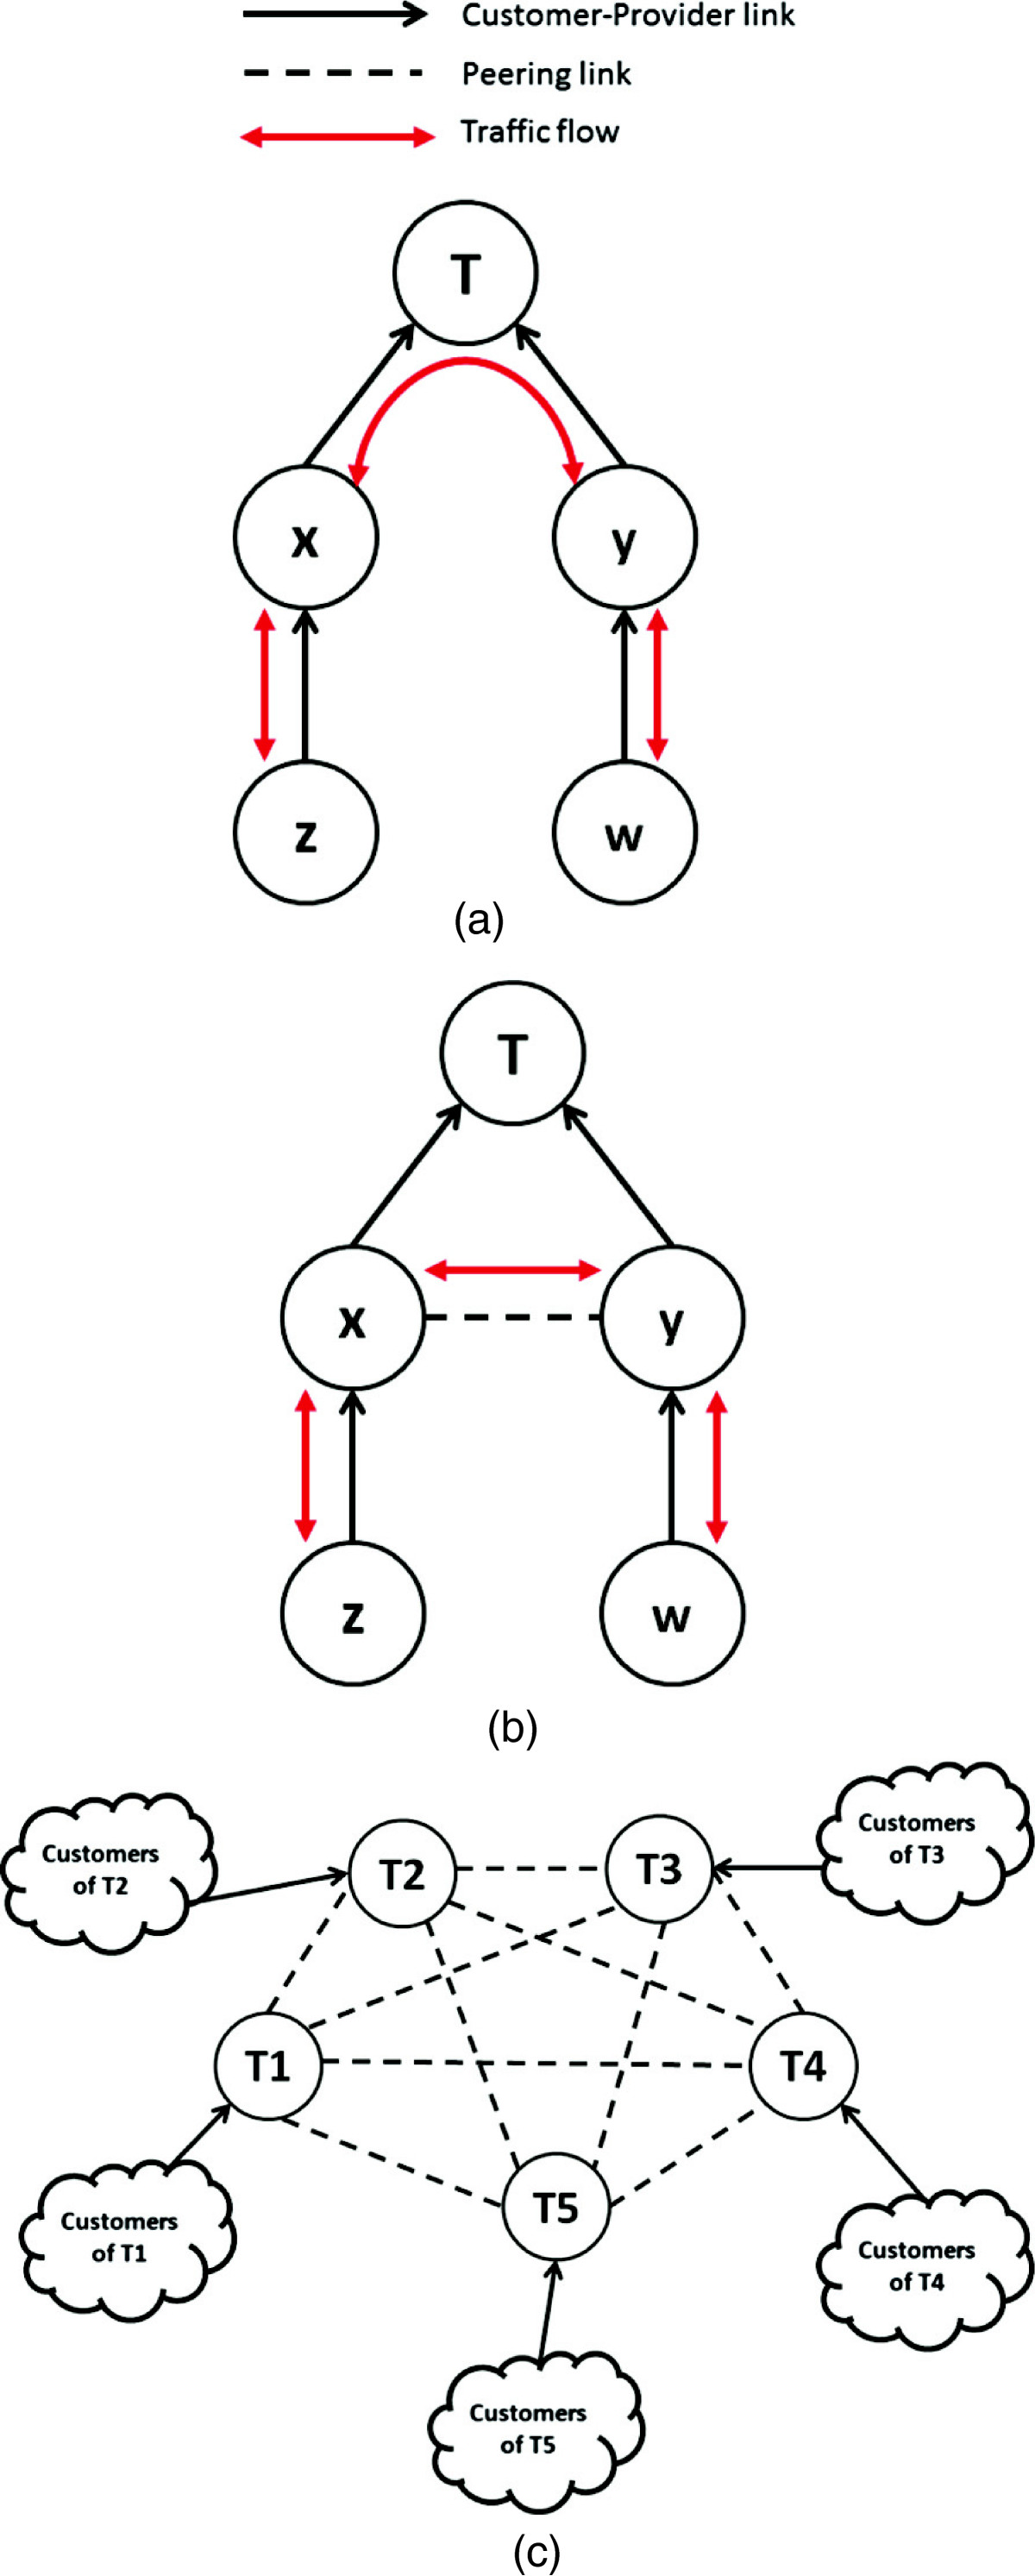 http://static-content.springer.com/image/art%3A10.1186%2F2194-3206-1-10/MediaObjects/40294_2012_Article_21_Fig1_HTML.jpg